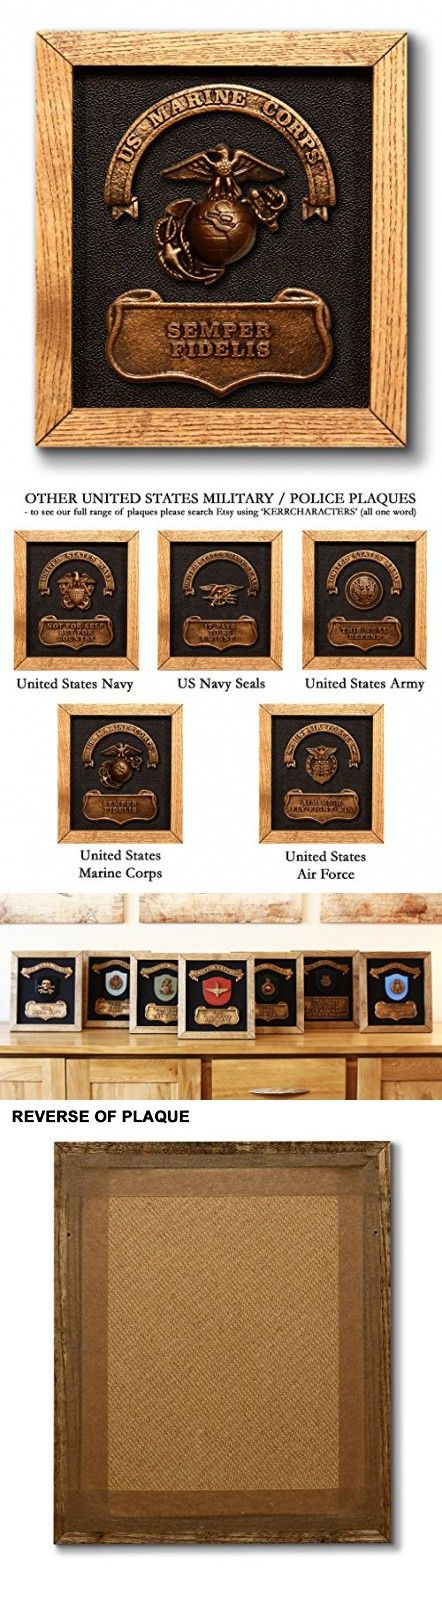 US MARINES Plaque - includes official United States Marine Corps badge and motto. Magnificent handmade military present or gift - Birthday / Fathers Day / Christmas / Recruit etc